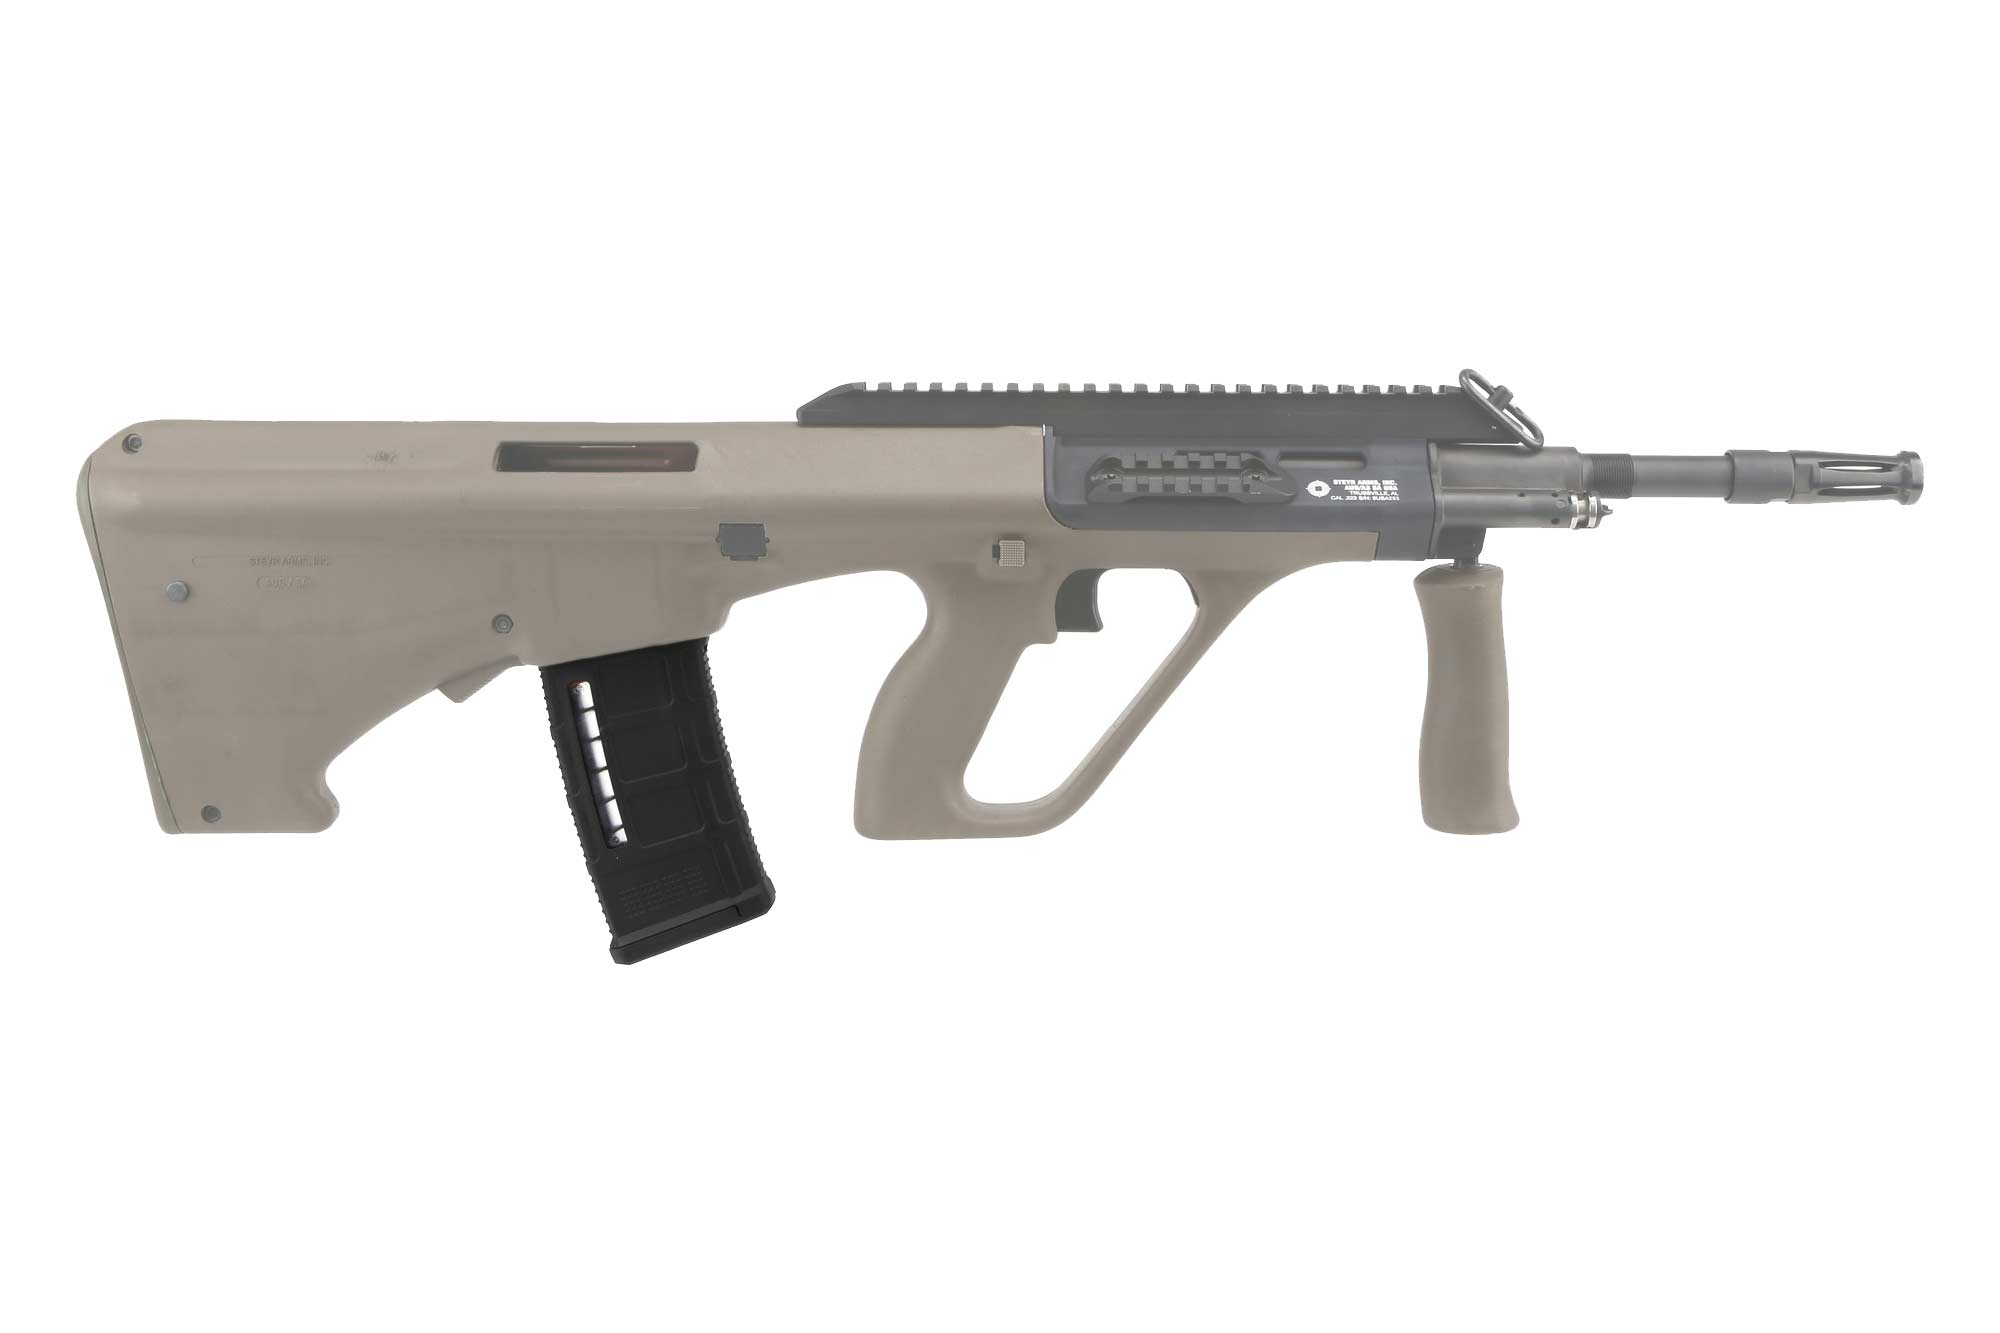 The PMAG Steyr AUG magazine features front and rear over insertion tabs